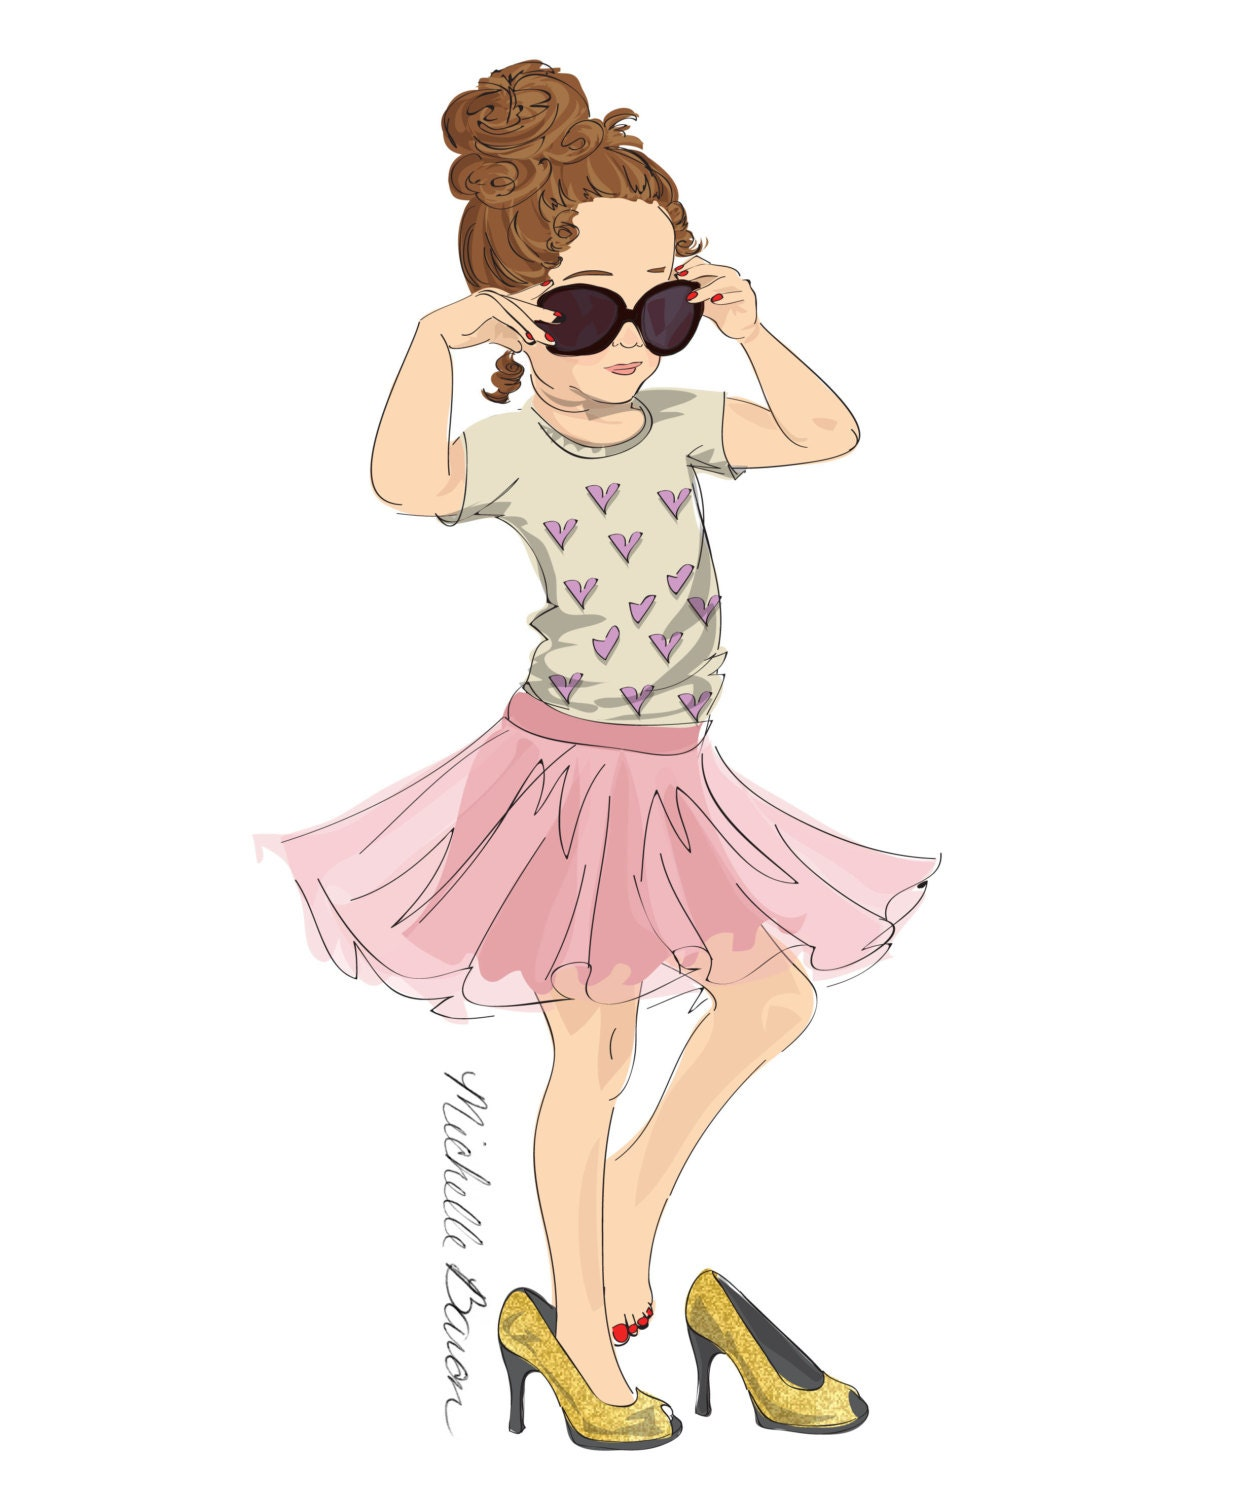 Children's Fashion Illustration Print with a little girl